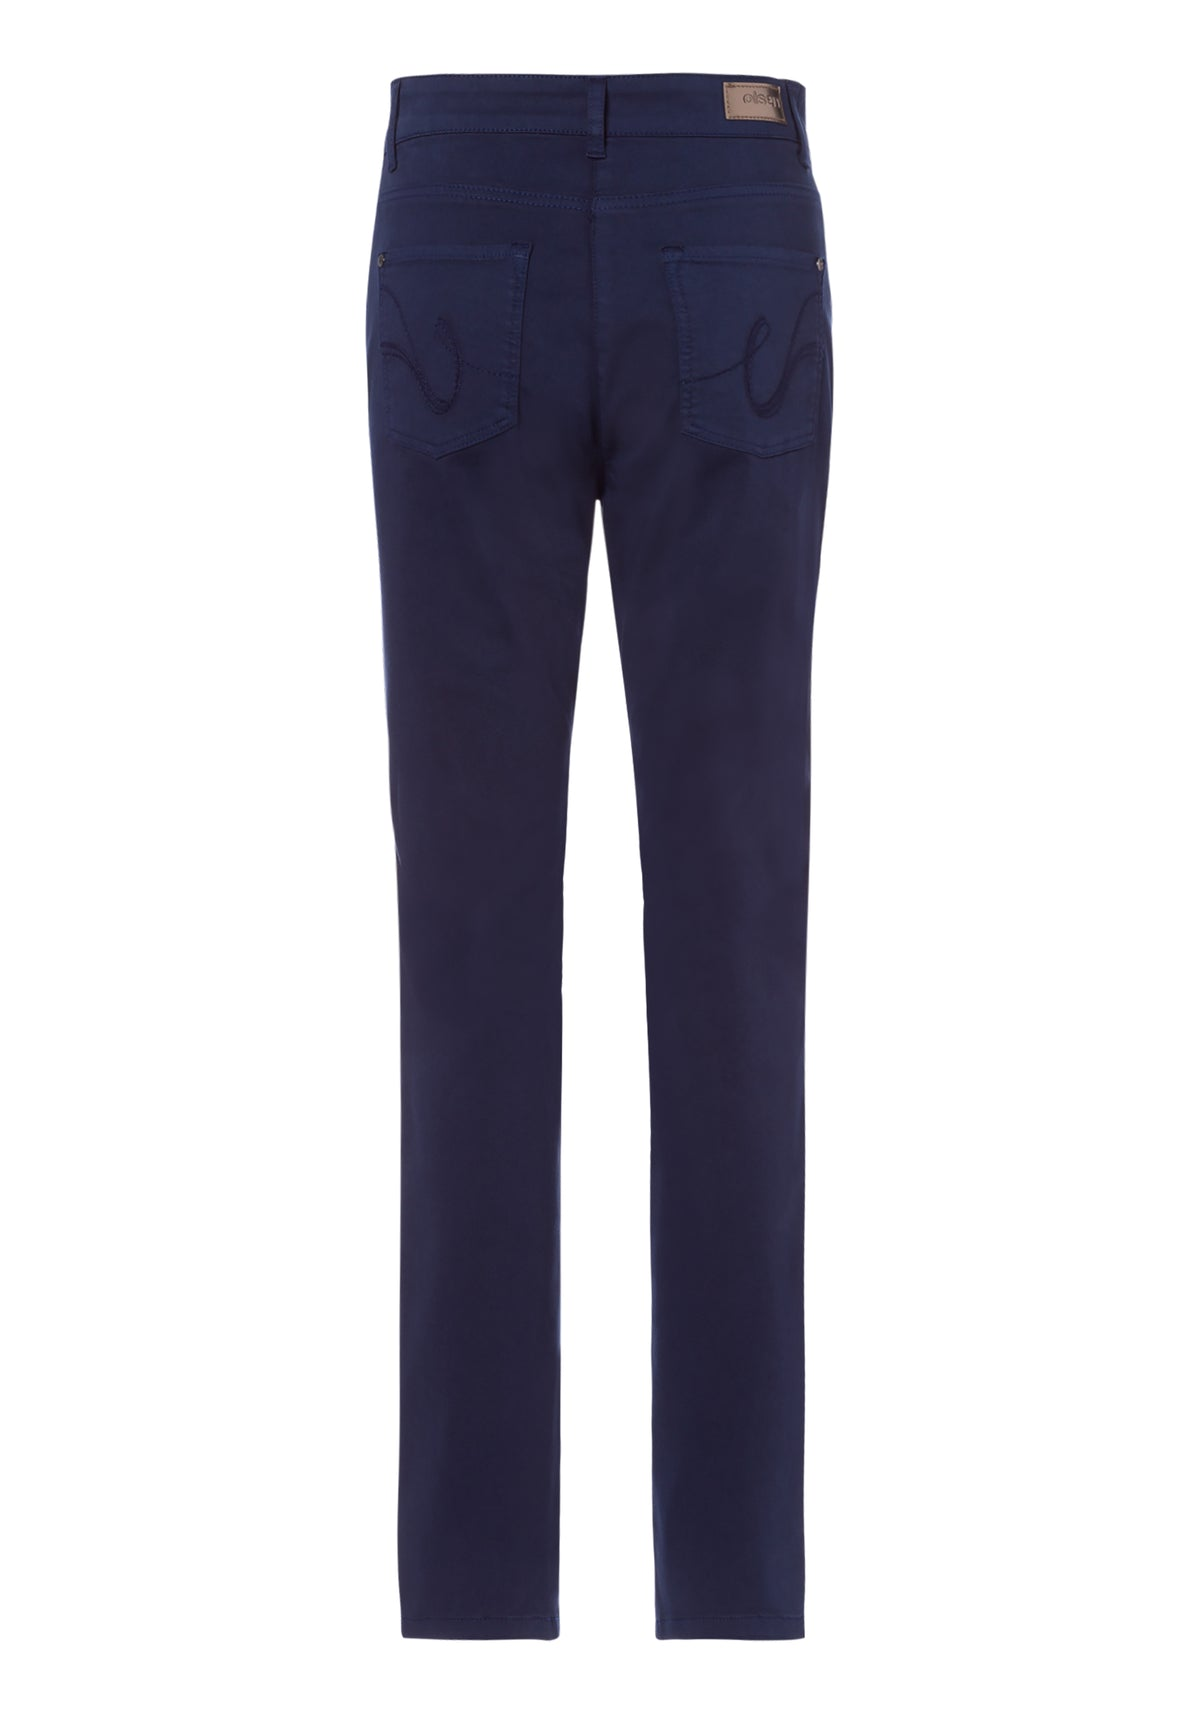 Mona Slim 5-Pocket Pant